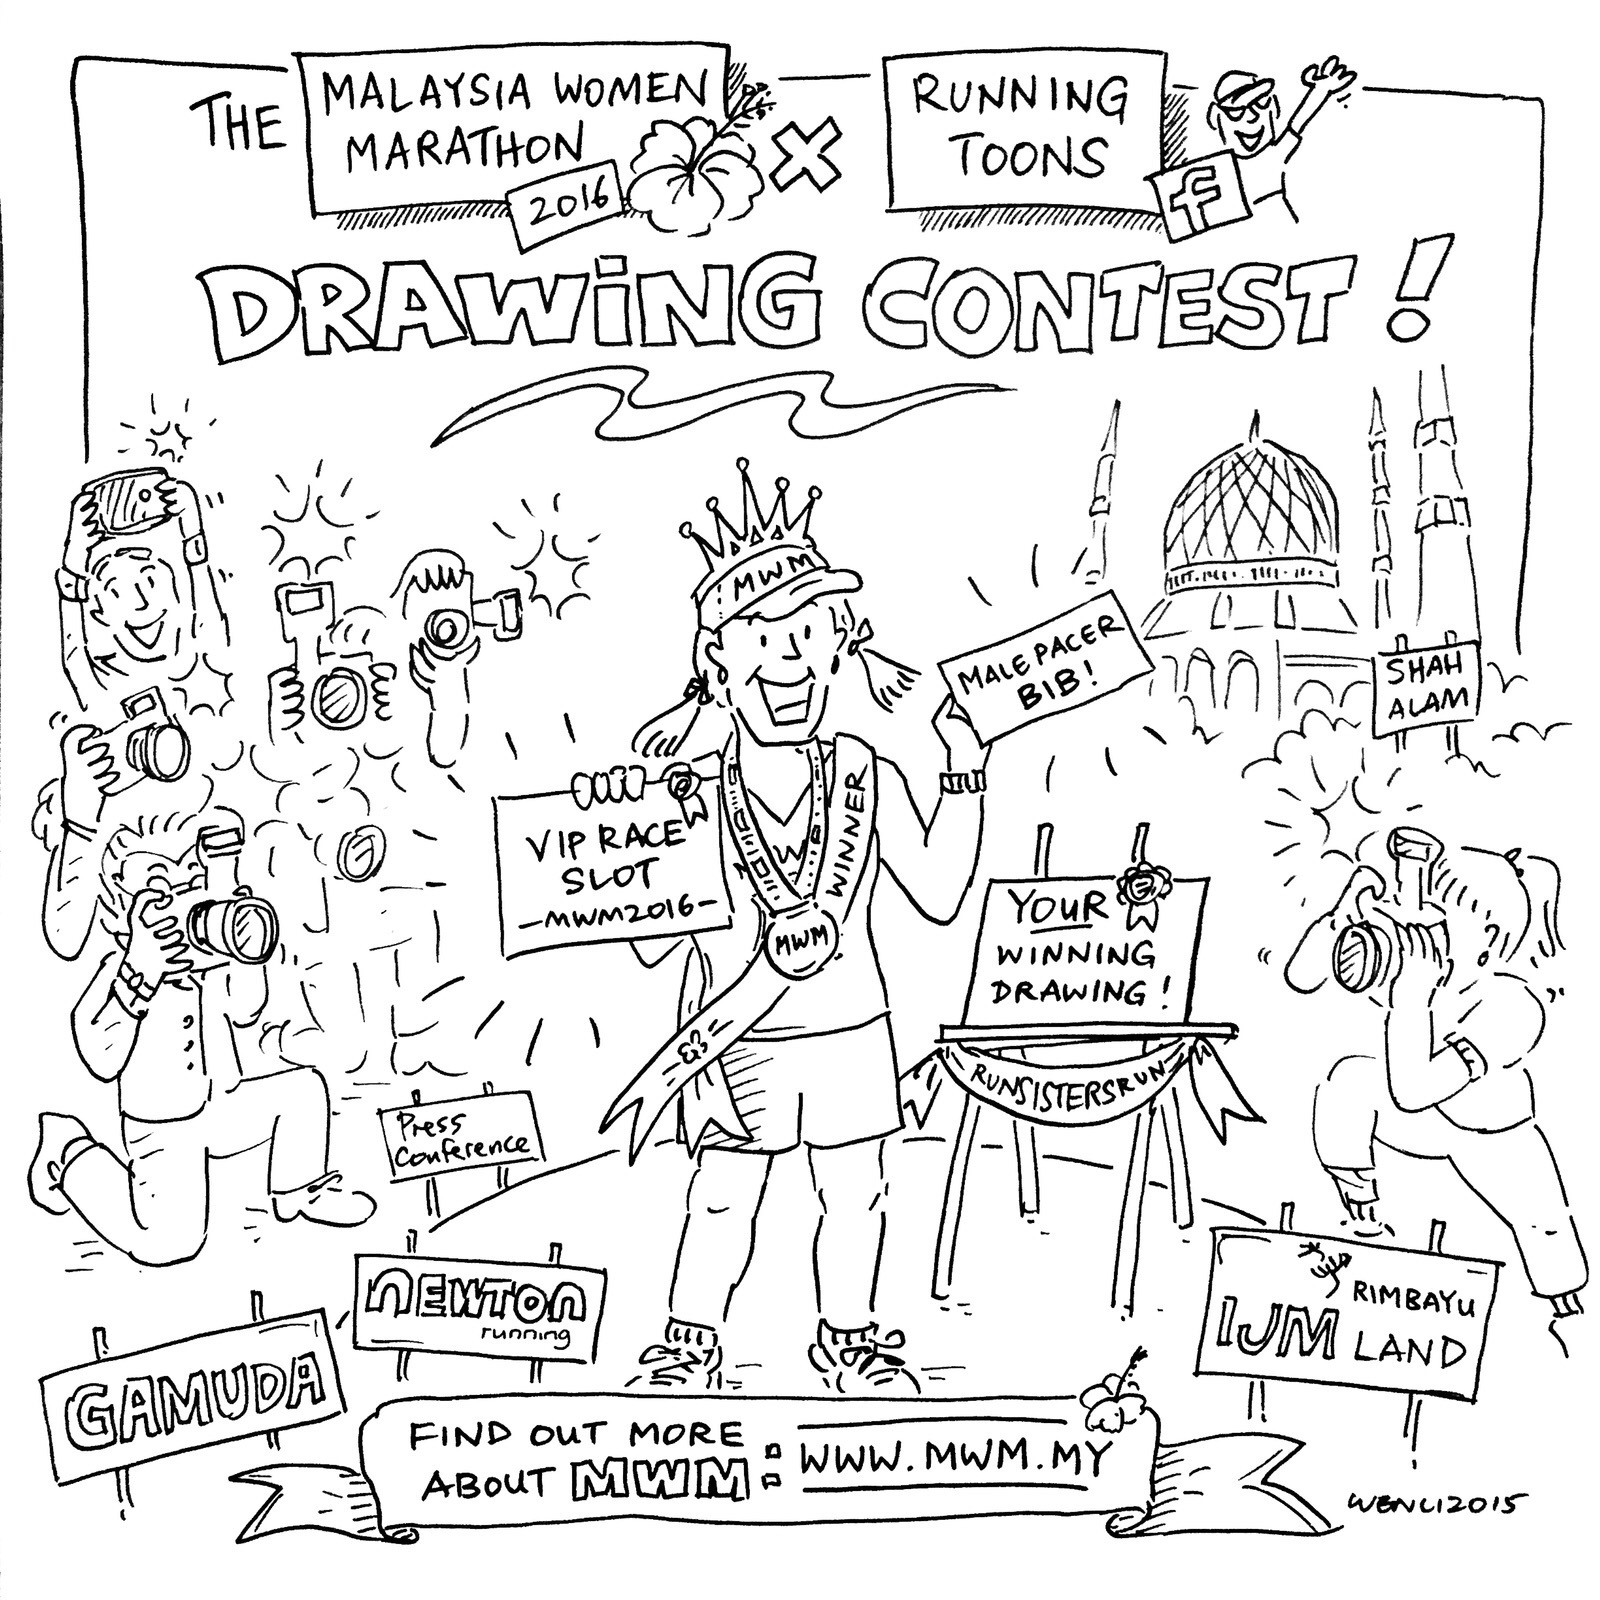 1600x1600 Malaysia Women Marathon 2016 Drawing Contest By Running Toons